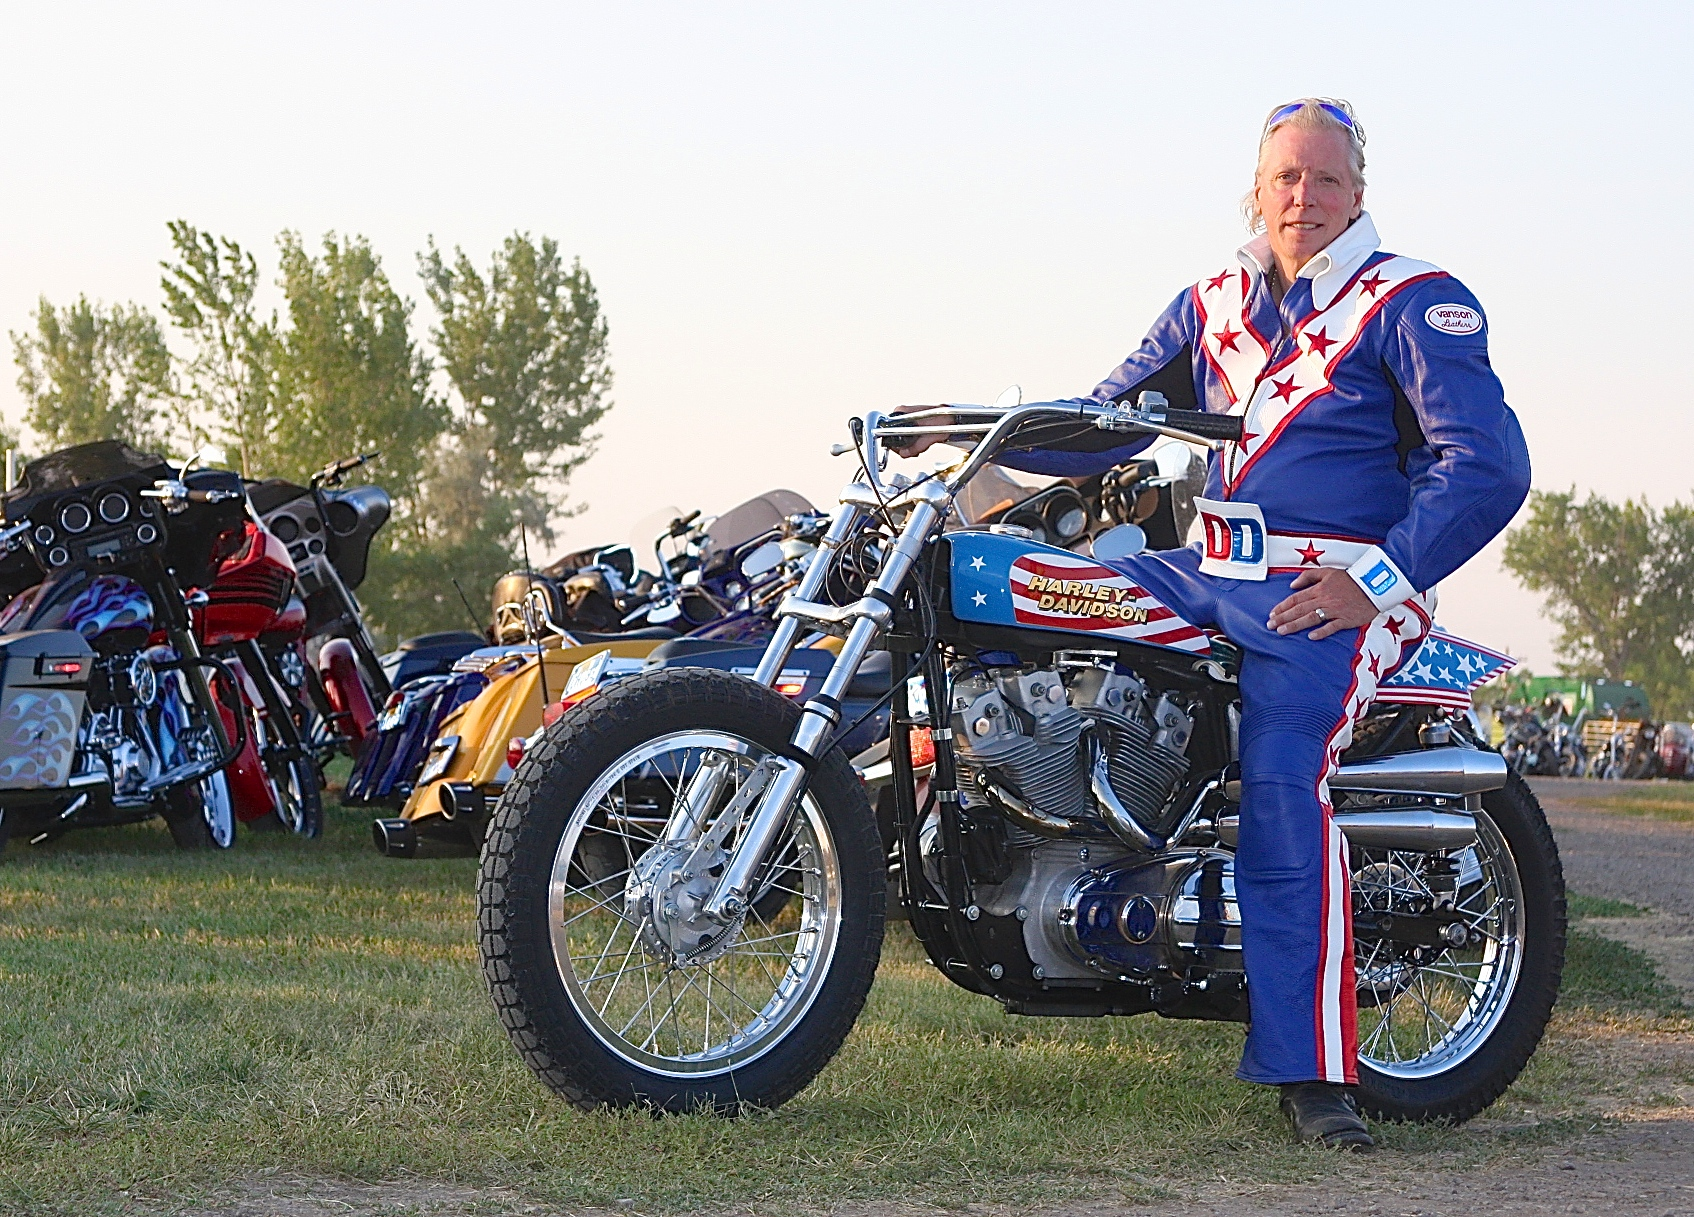 Evel Knievel S Harley Davidson Xl1000 Up For Auction: COMPLETE ISSUE July 30, 2015